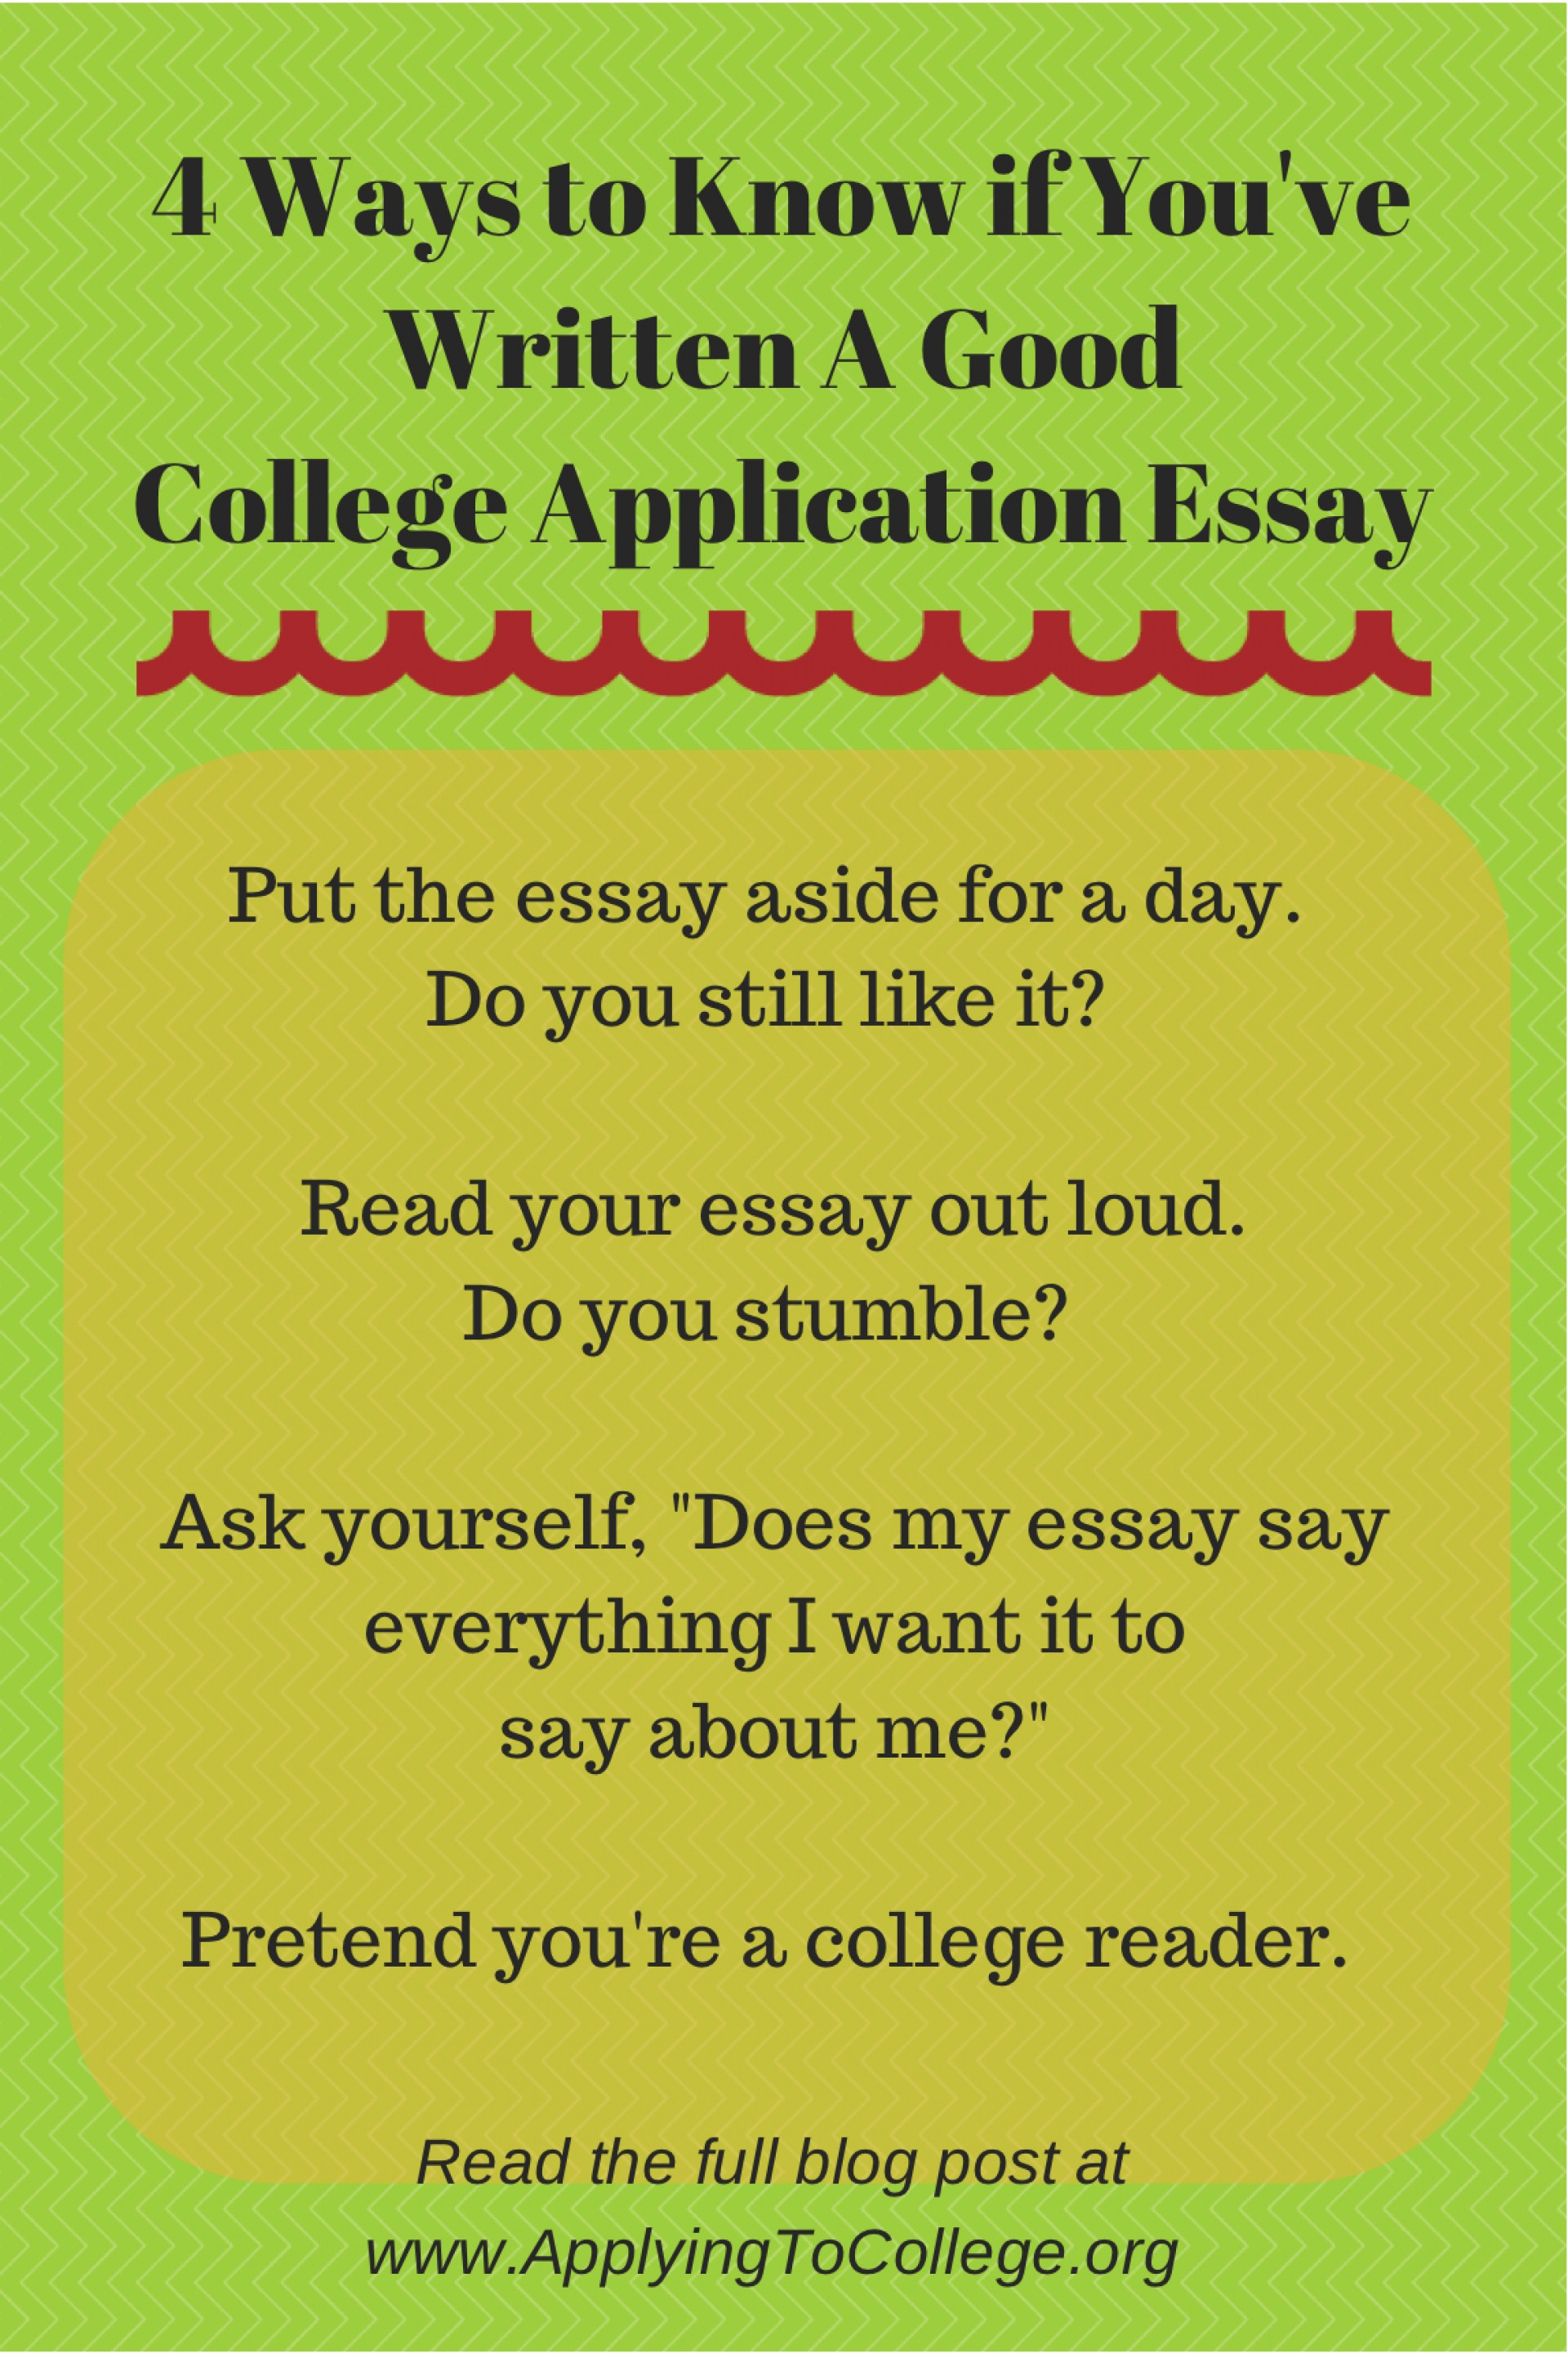 019 Tips To Write Good Essay Example 4ways Know If Youve Marvelous A Narrative Persuasive In Exam 1920